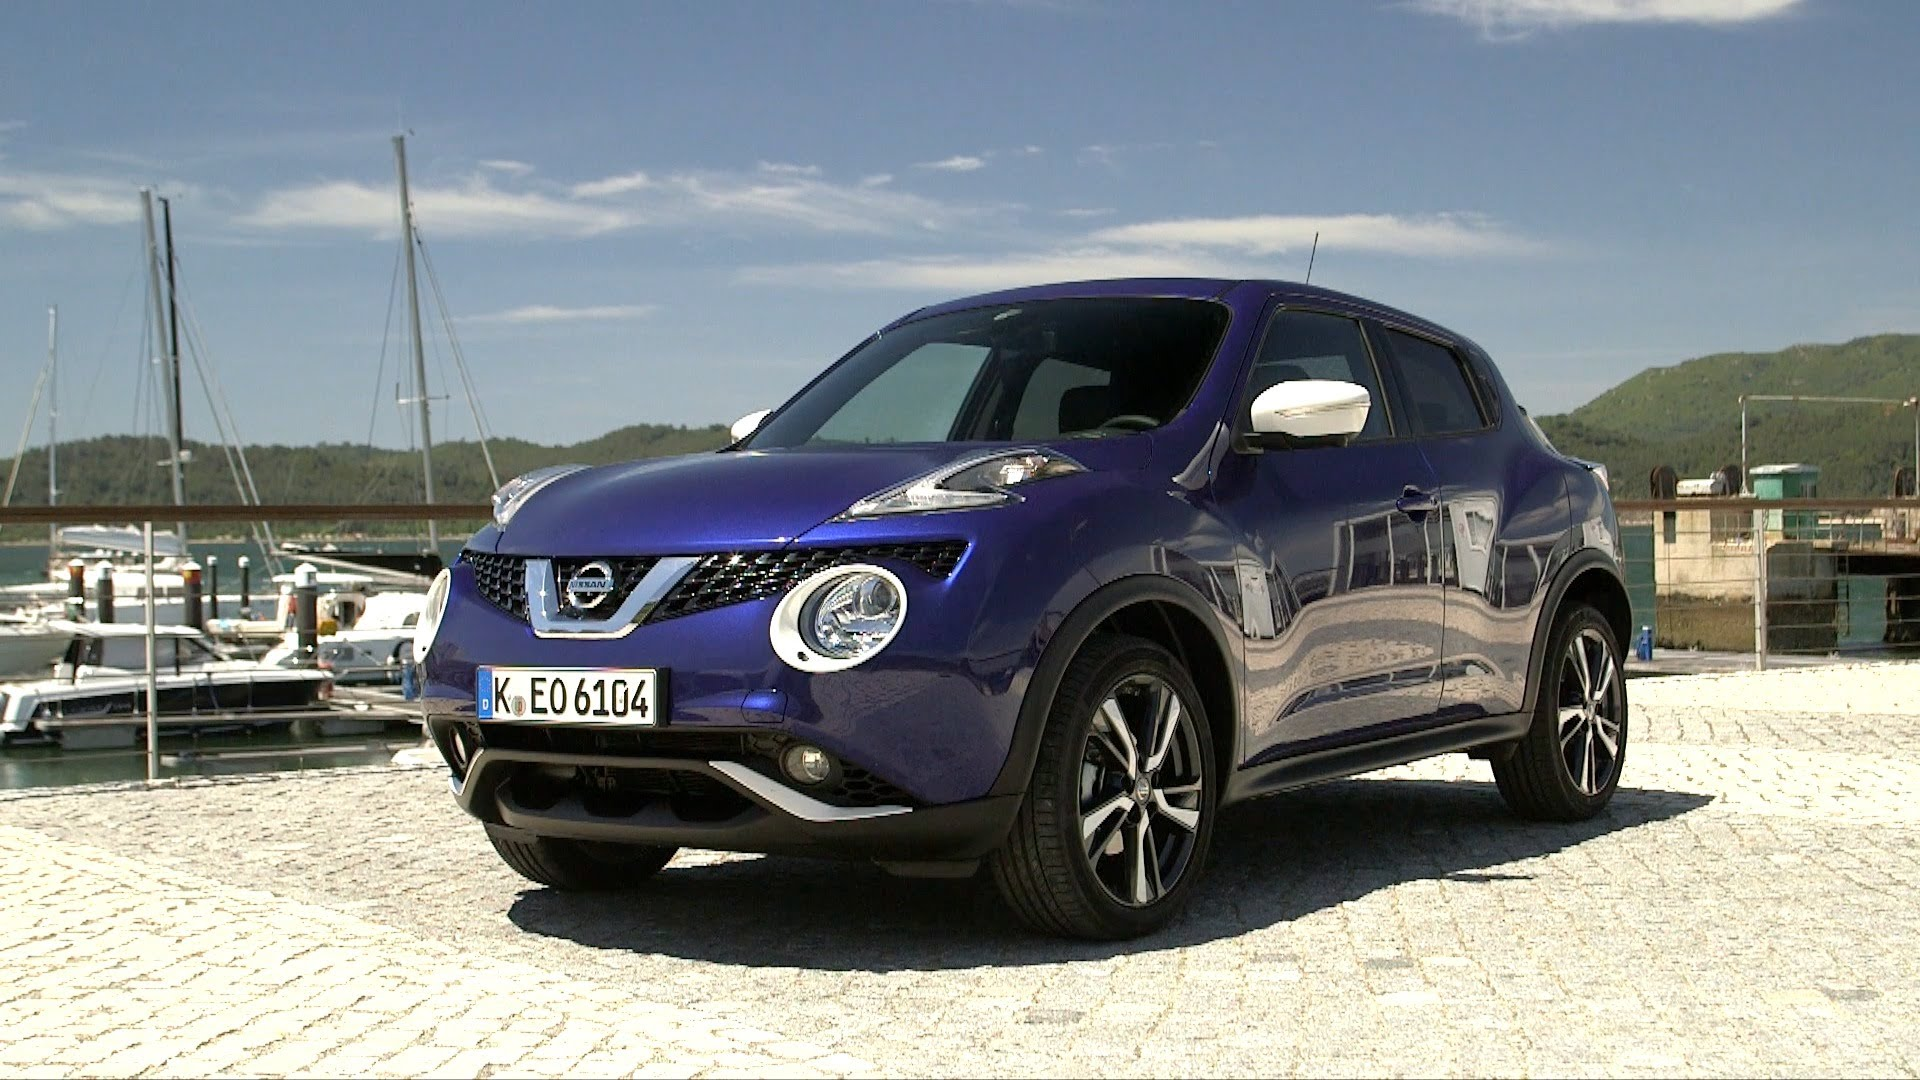 NEW Nissan Juke: What's new?